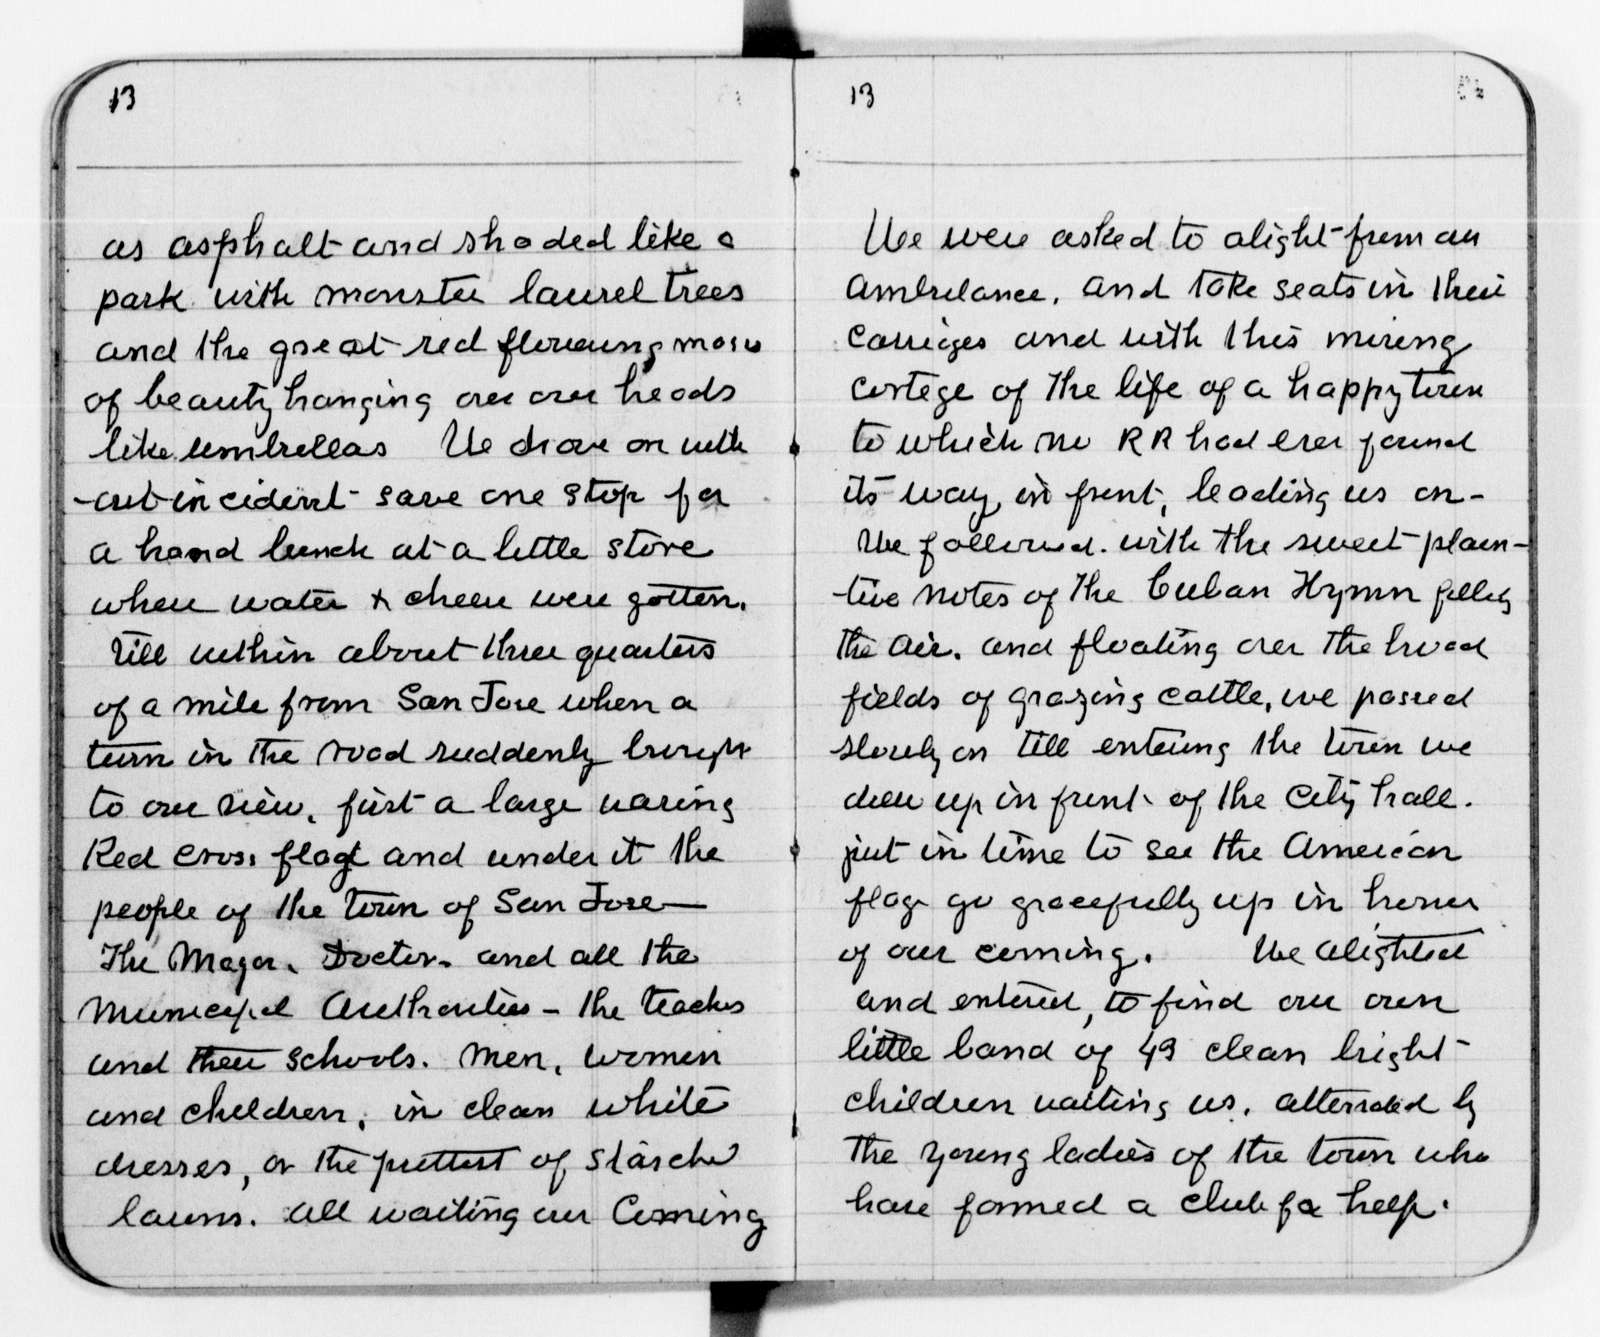 Clara Barton Papers: Diaries and Journals: 1899, June 1-Oct. 13